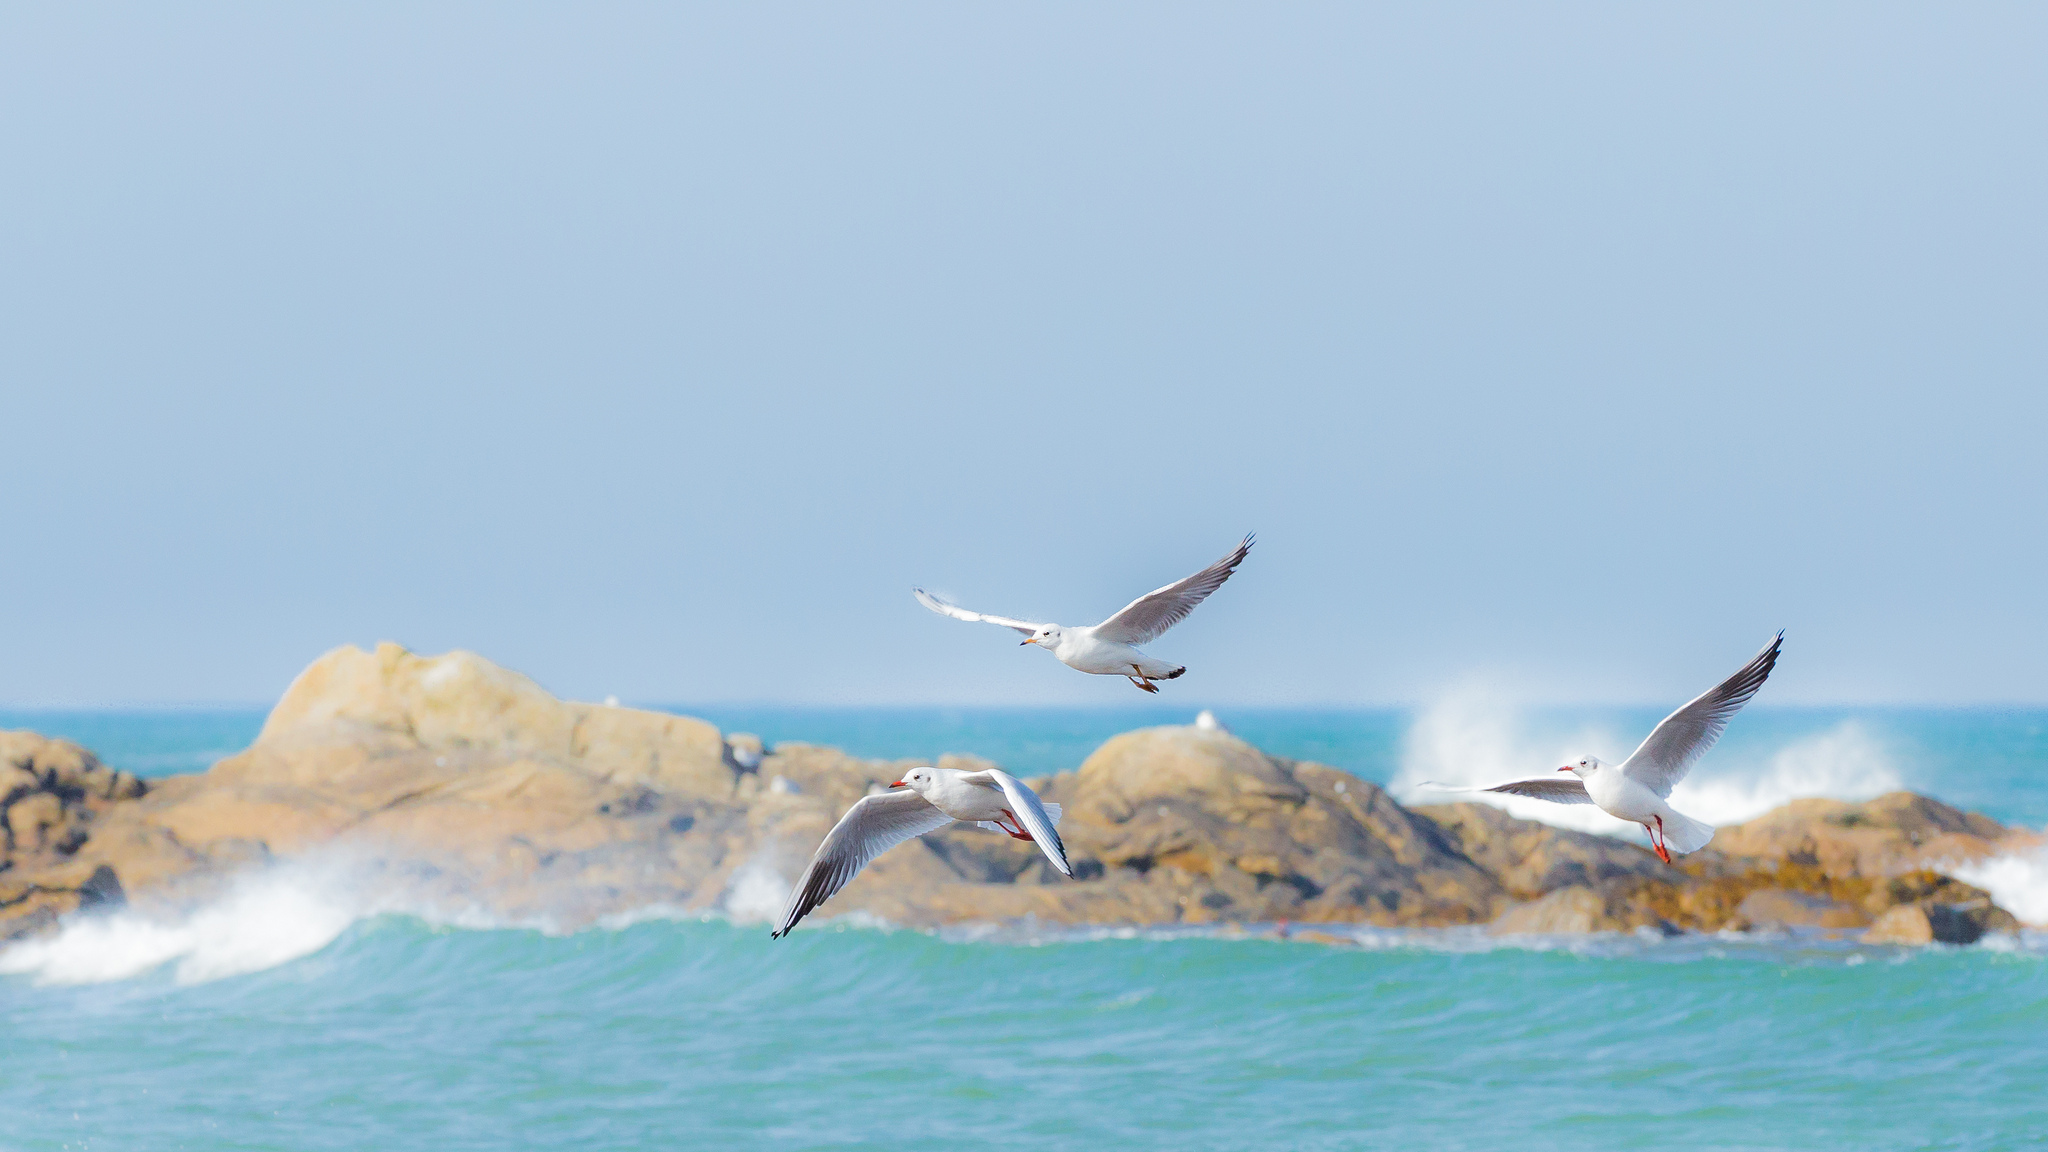 Mouettes vol guisseny Finistere Bretagne